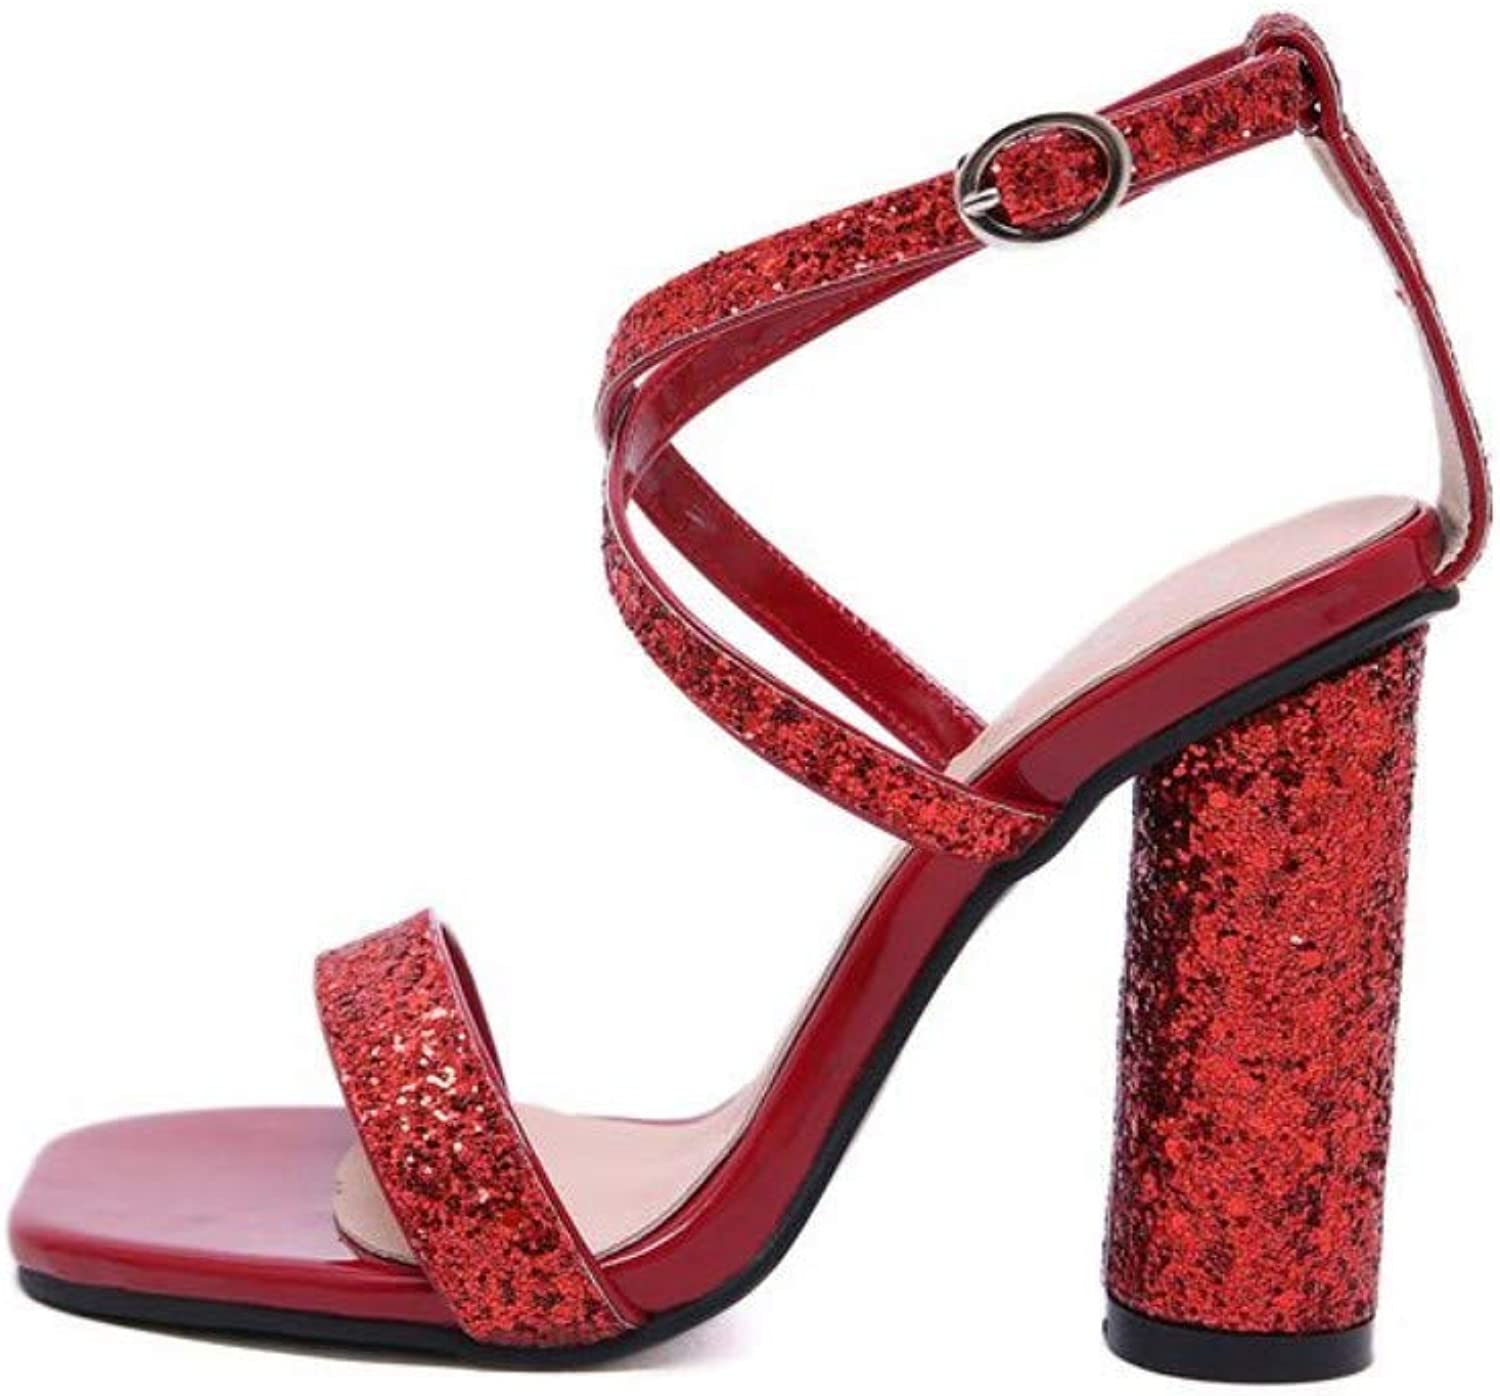 JQfashion Sexy Cross Night Club for Women's High-Heeled shoes Sequins Rough-Heeled High-Heeled Sandals